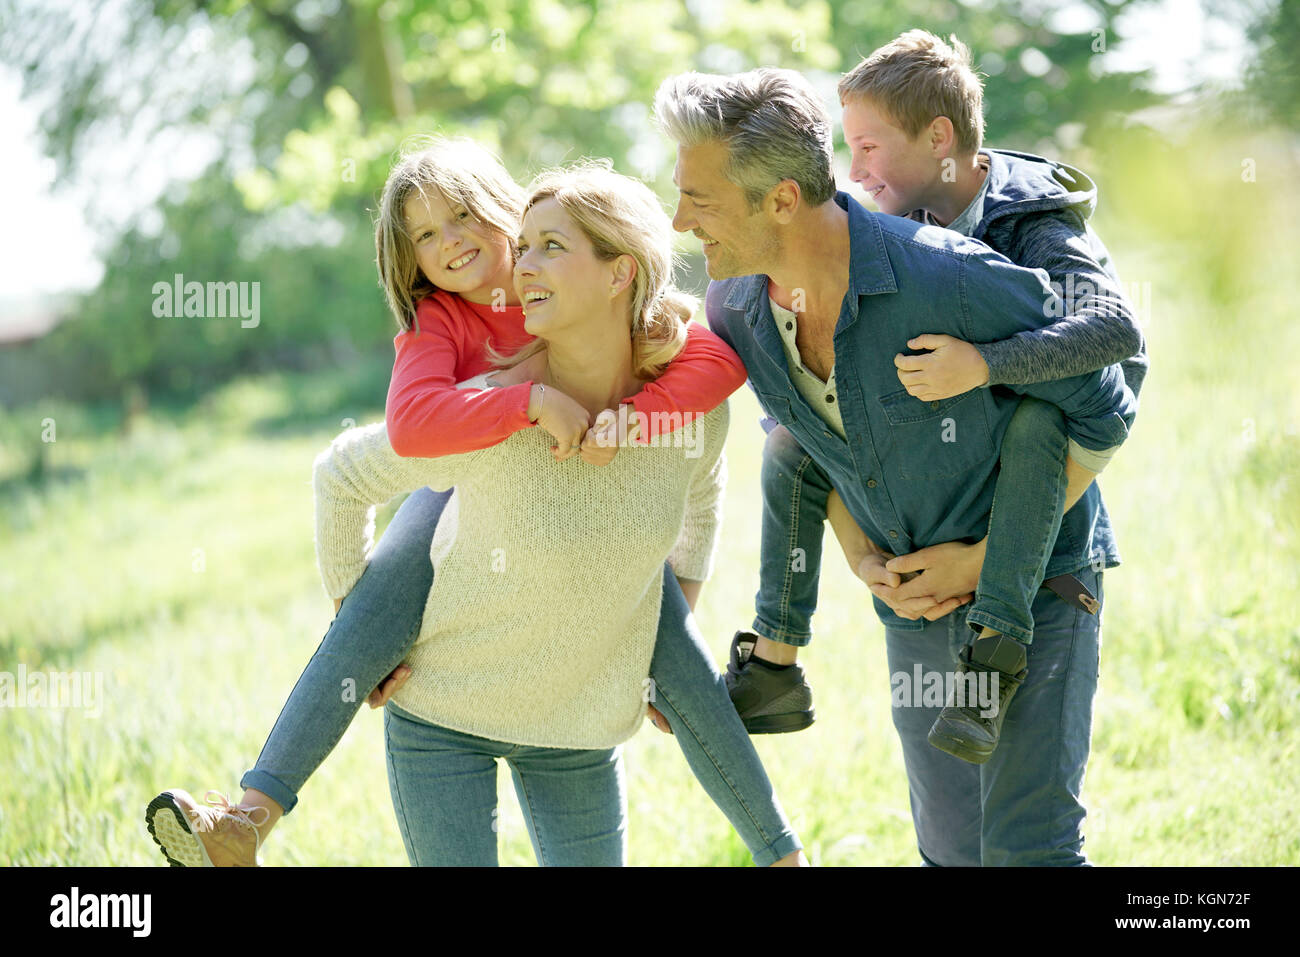 Parents giving piggyback ride to kids in countryside - Stock Image